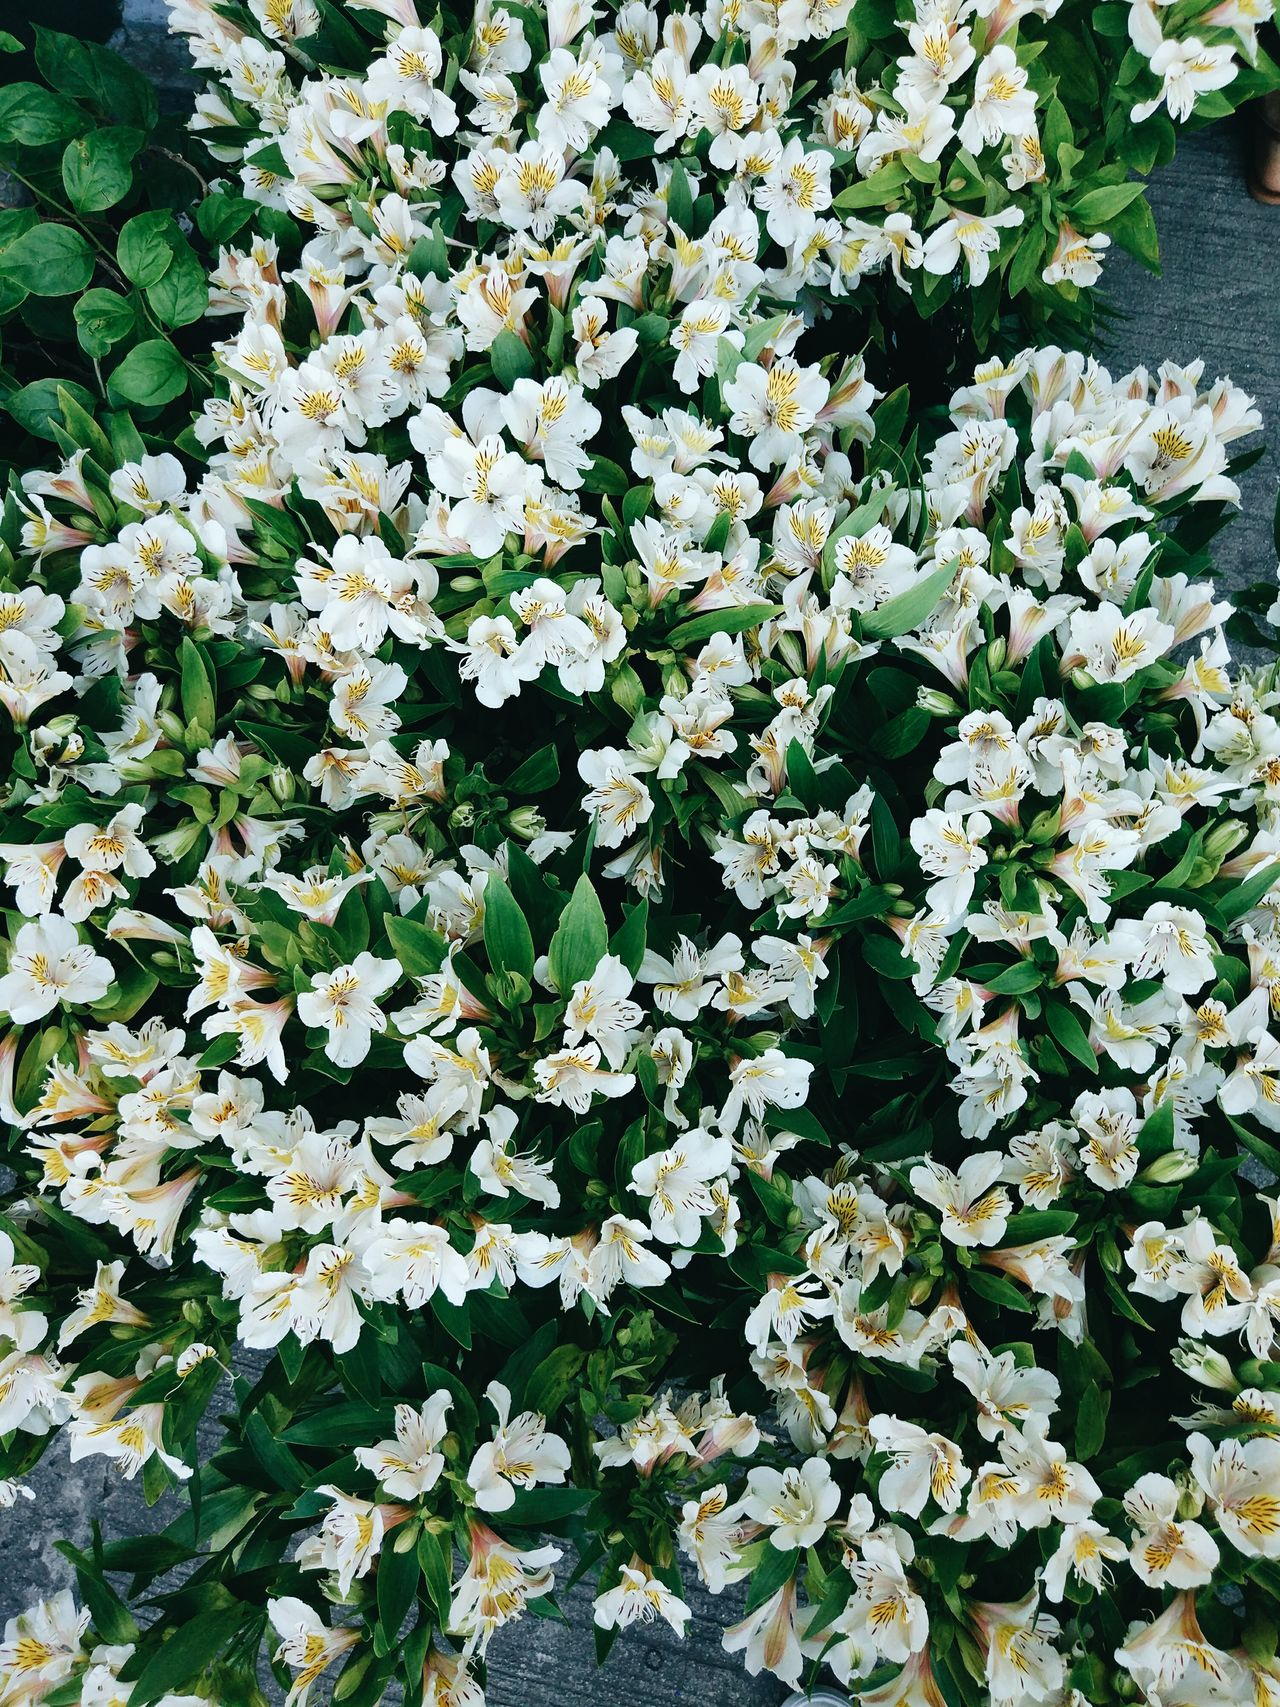 Nature Growth White Color Beauty In Nature Flower Freshness No People Plant Day Fragility Outdoors Blossom Backgrounds Close-up EyeEmNewHere Flowers Lily Bouquet Flowers,Plants & Garden Live For The Story